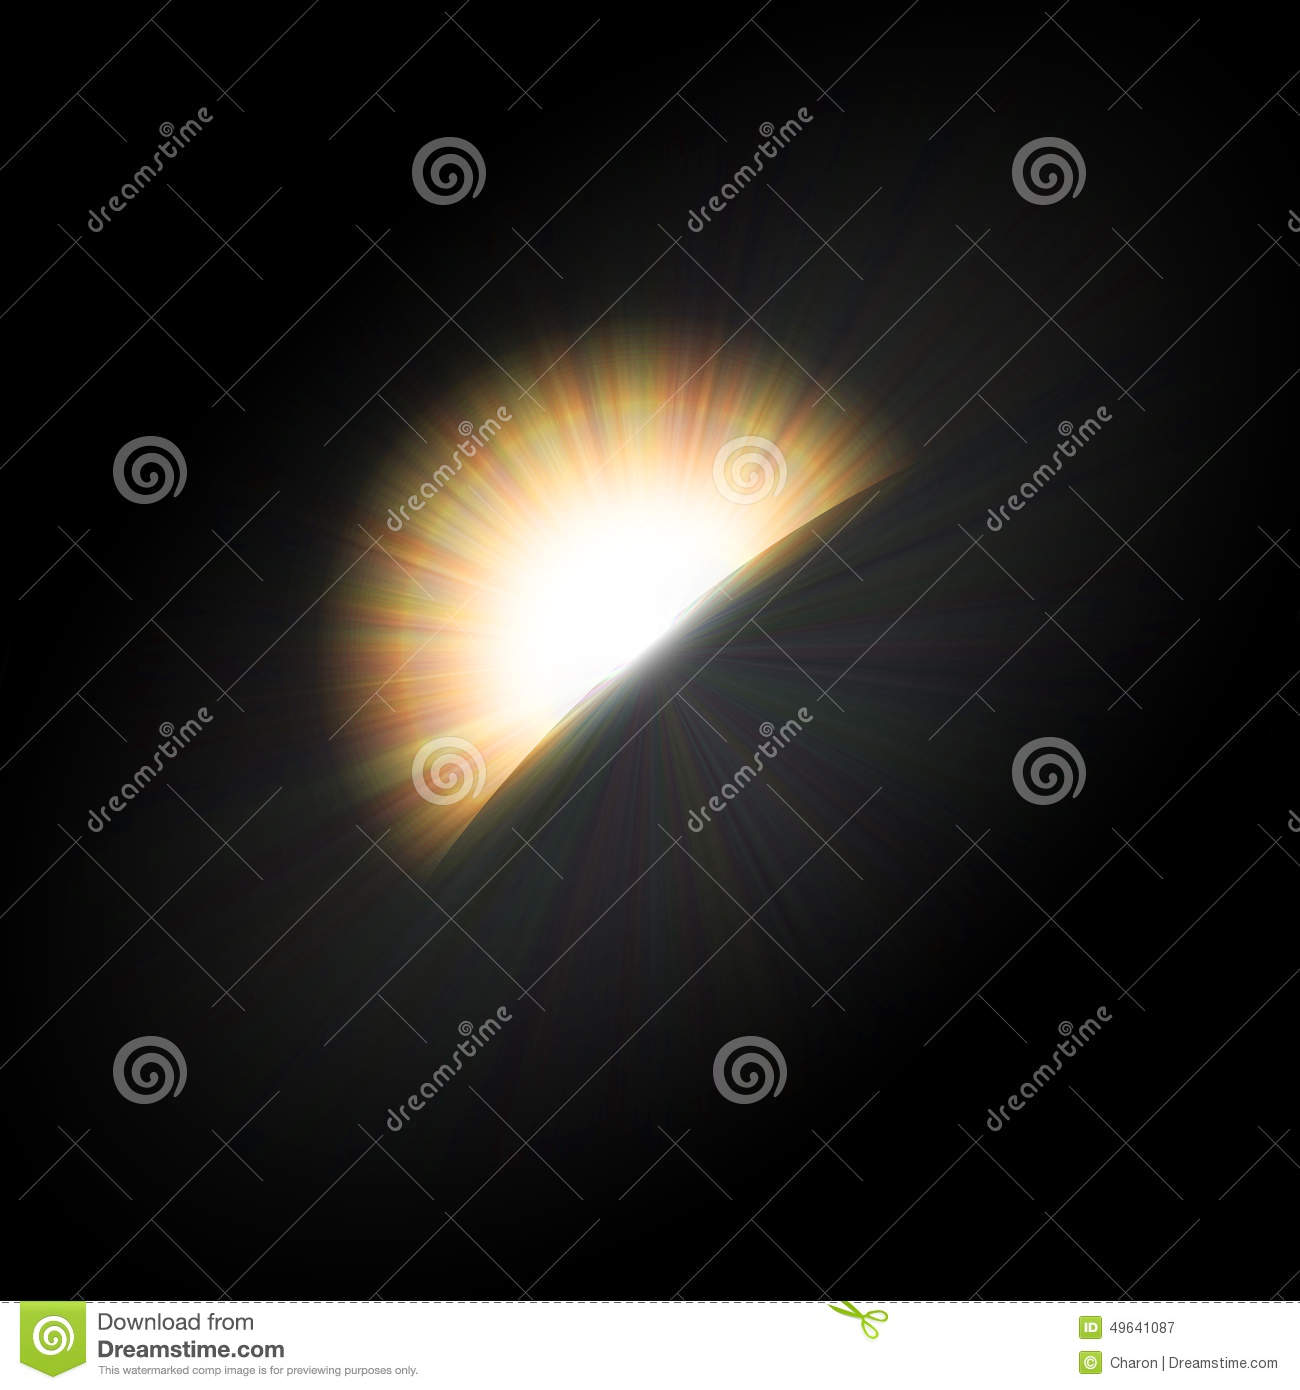 Eclipse light halo flare emptied space